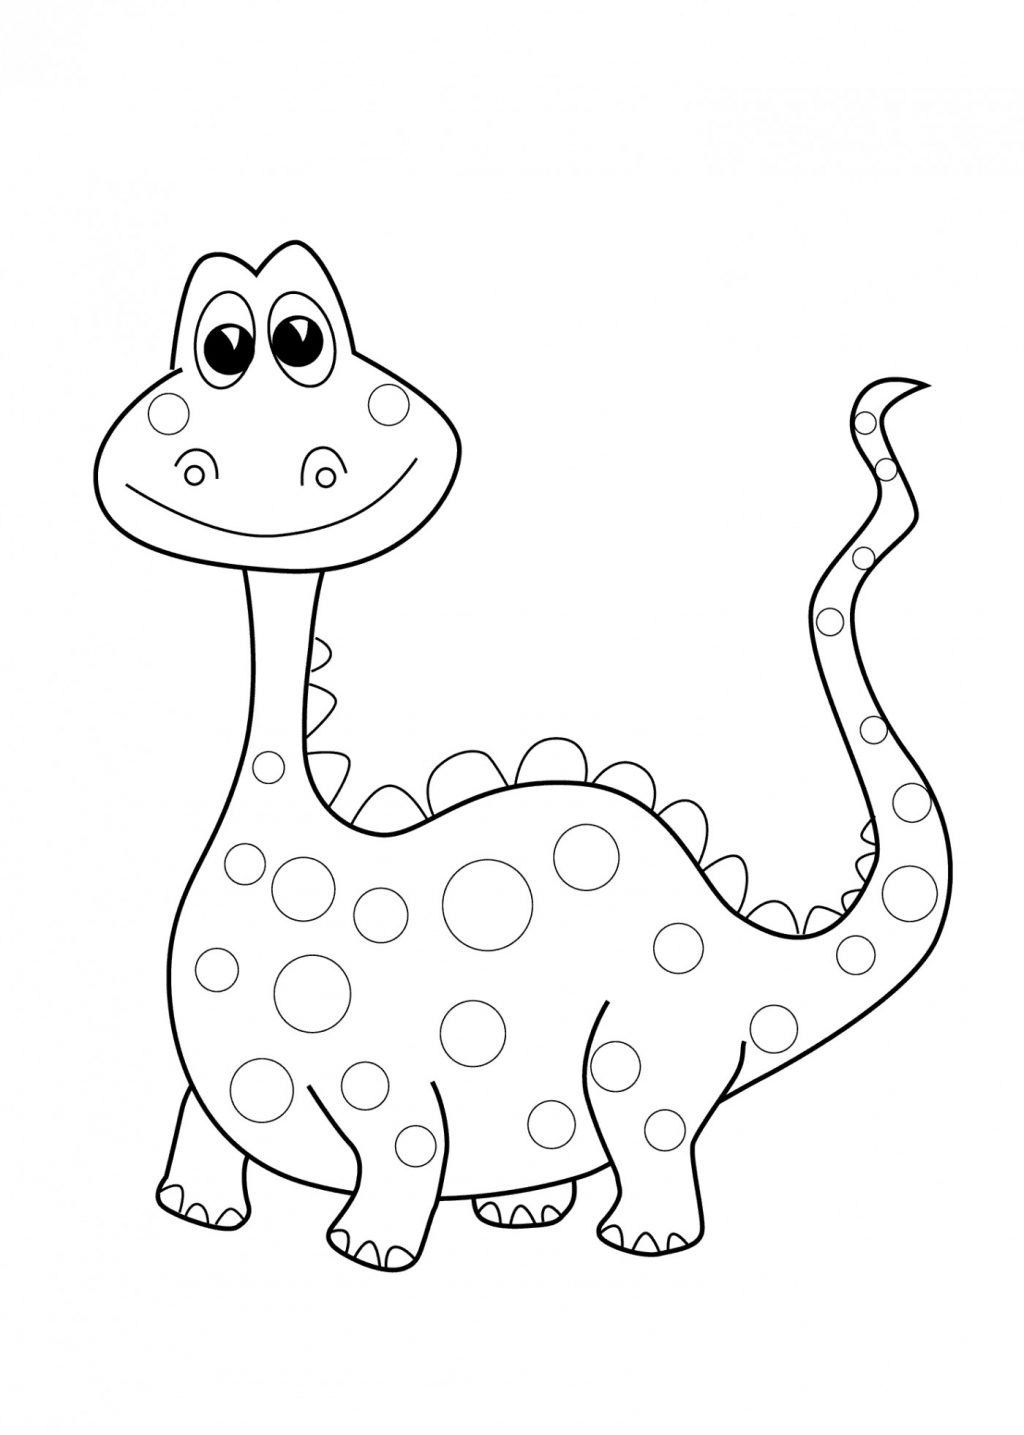 26++ Free dinosaur coloring pages online ideas